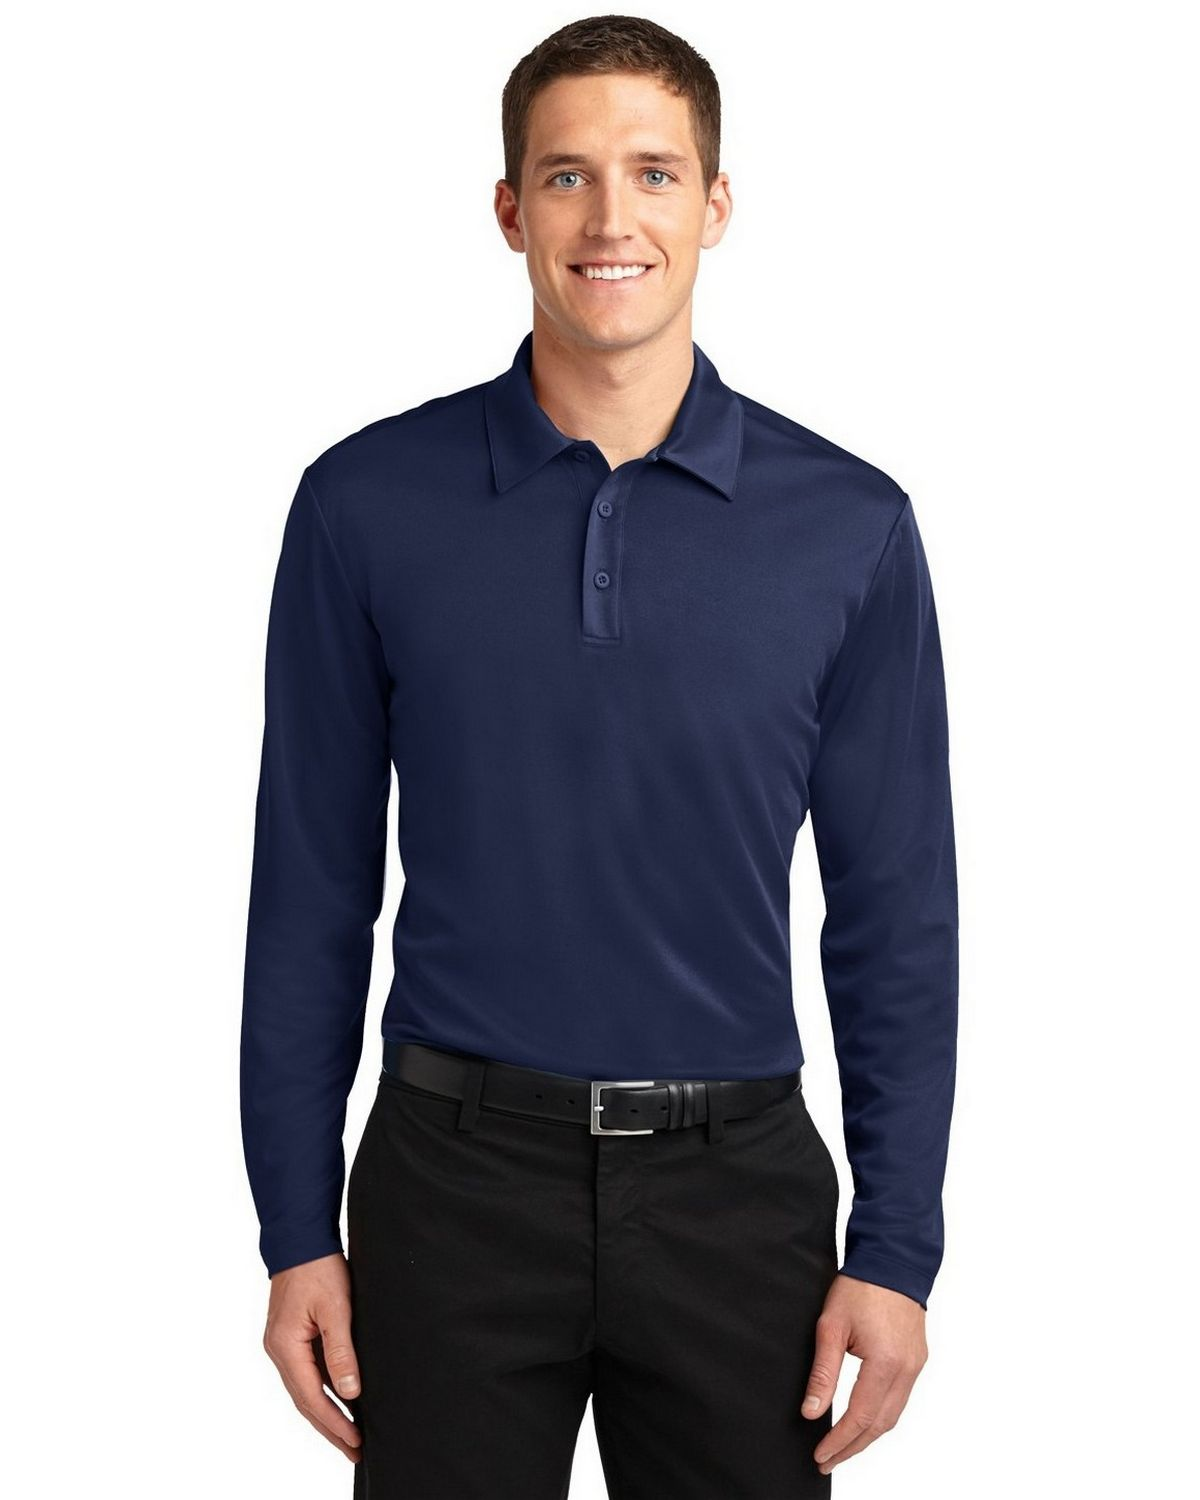 Port Authority K540LS Men's Silk Touch Performance Polo - Navy - XS #silk